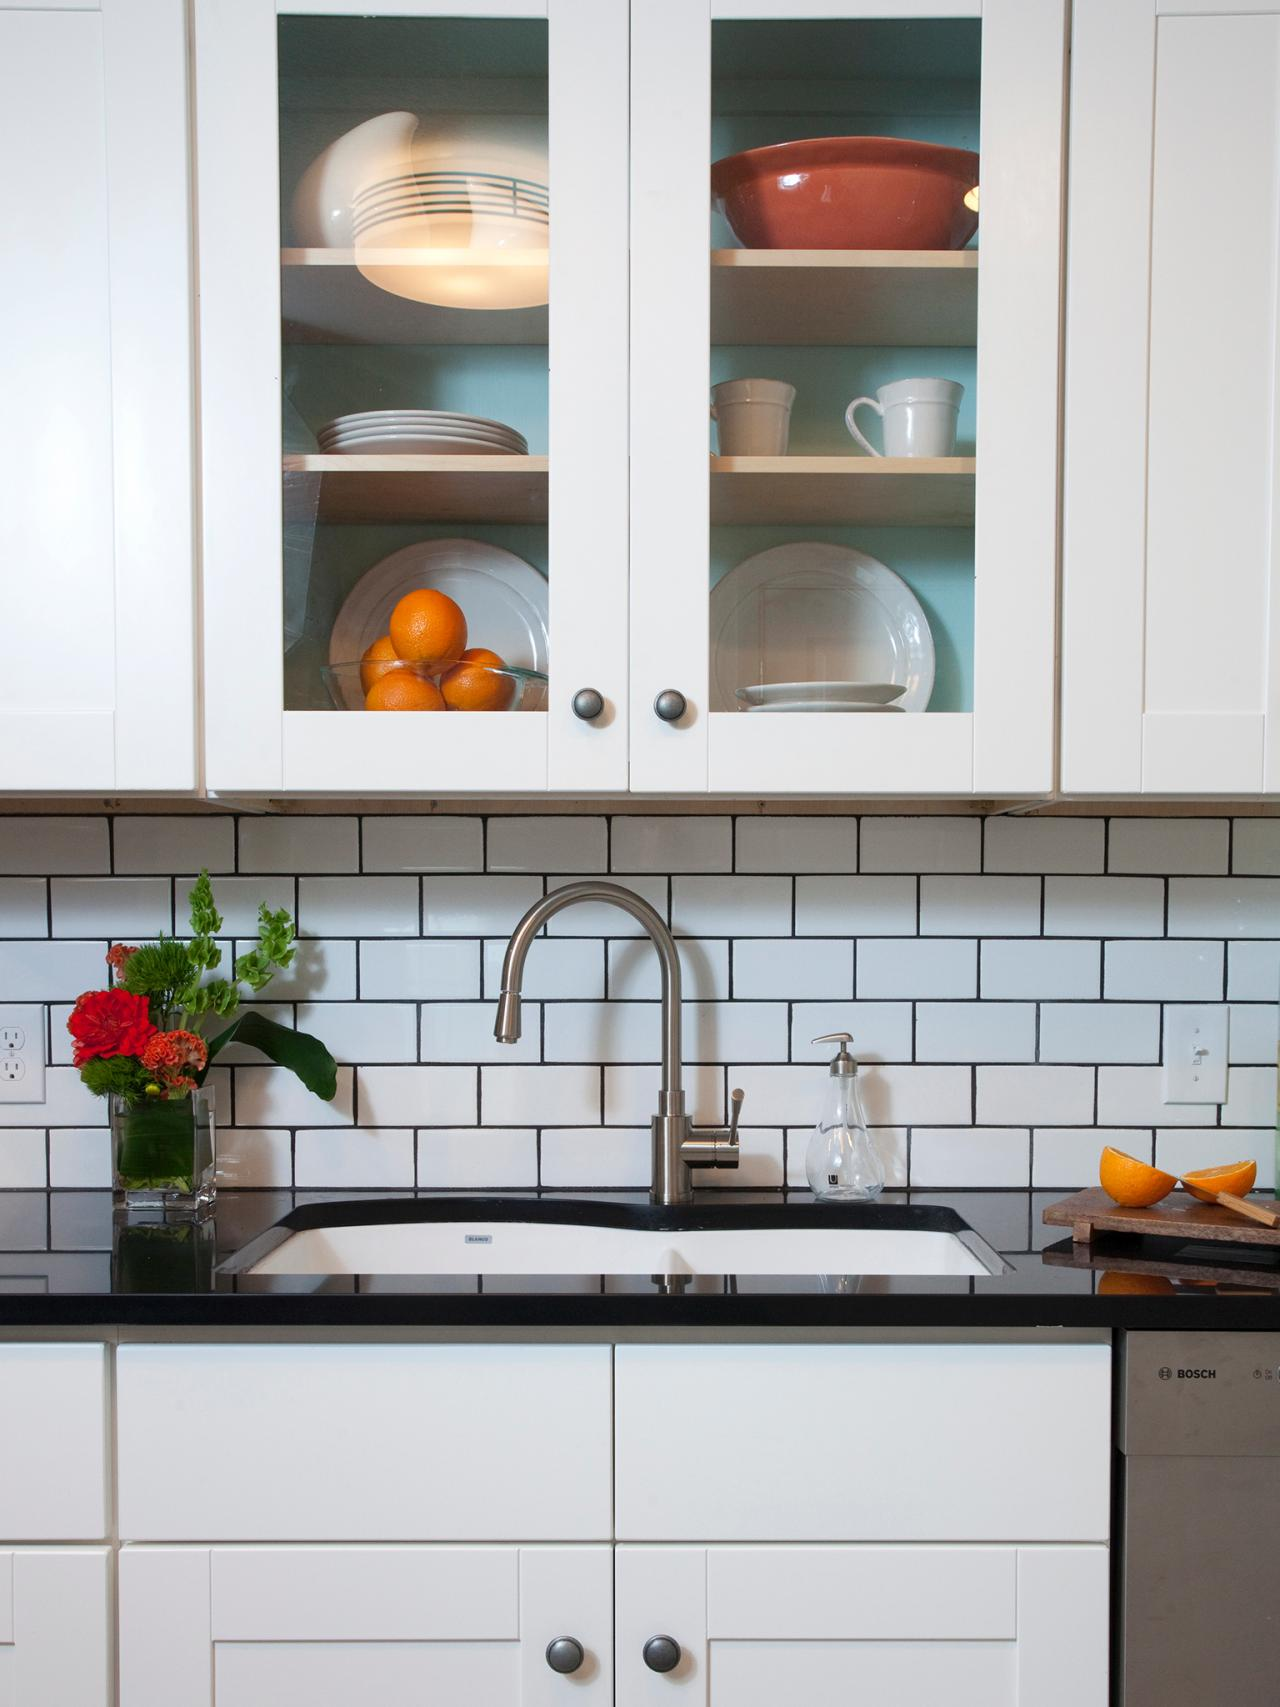 about grout in keeping with the classic white subway tile